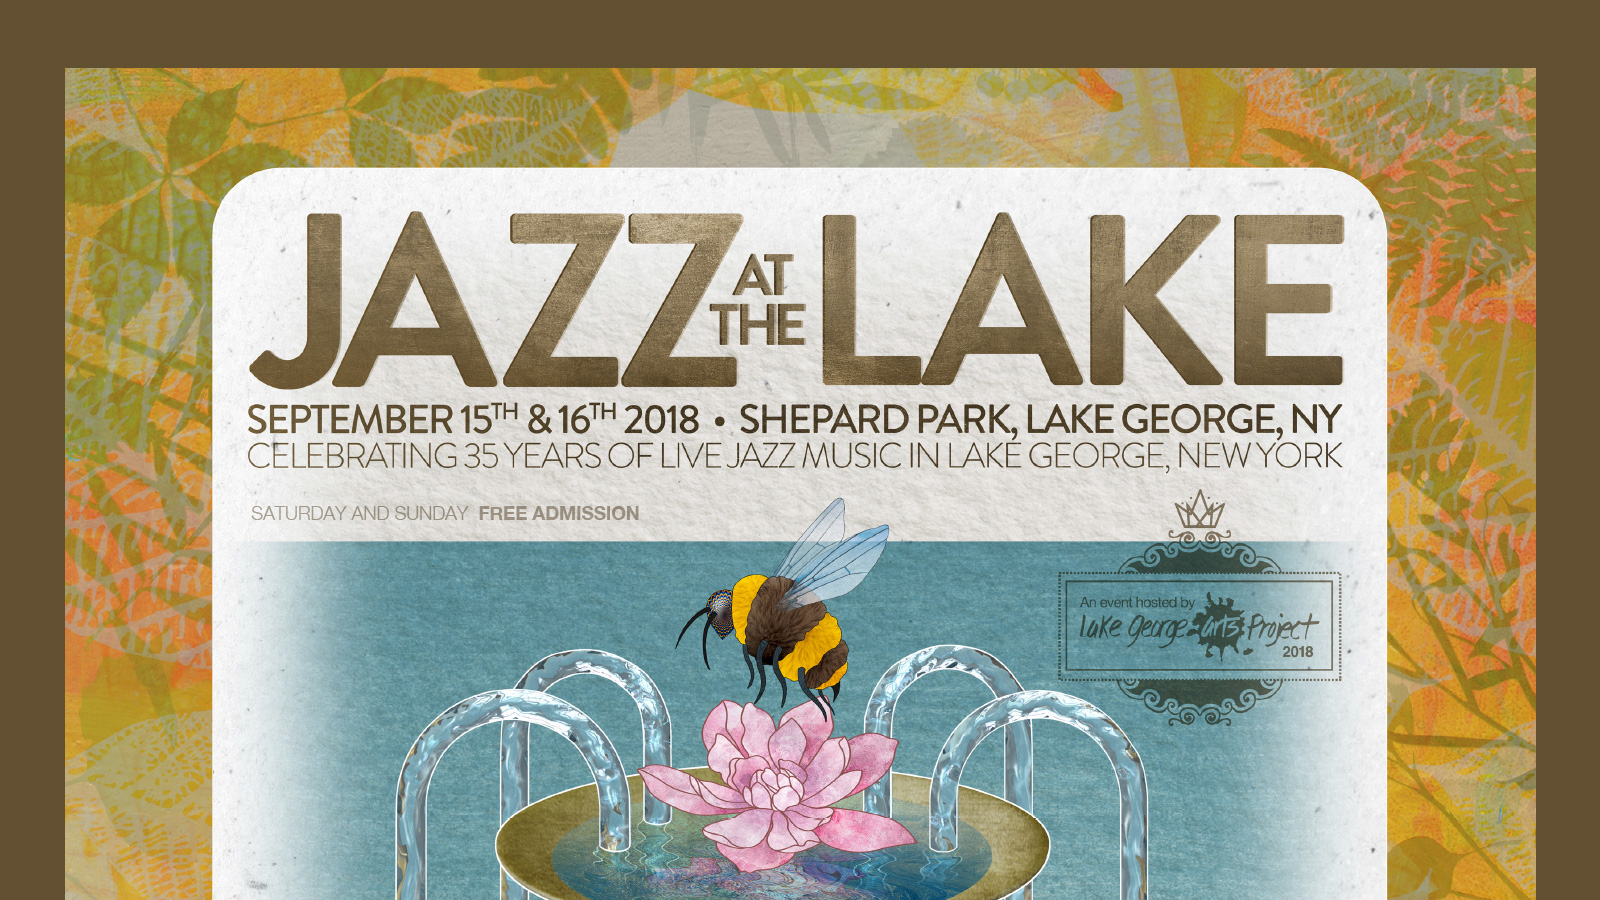 Jazz at the Lake 2018